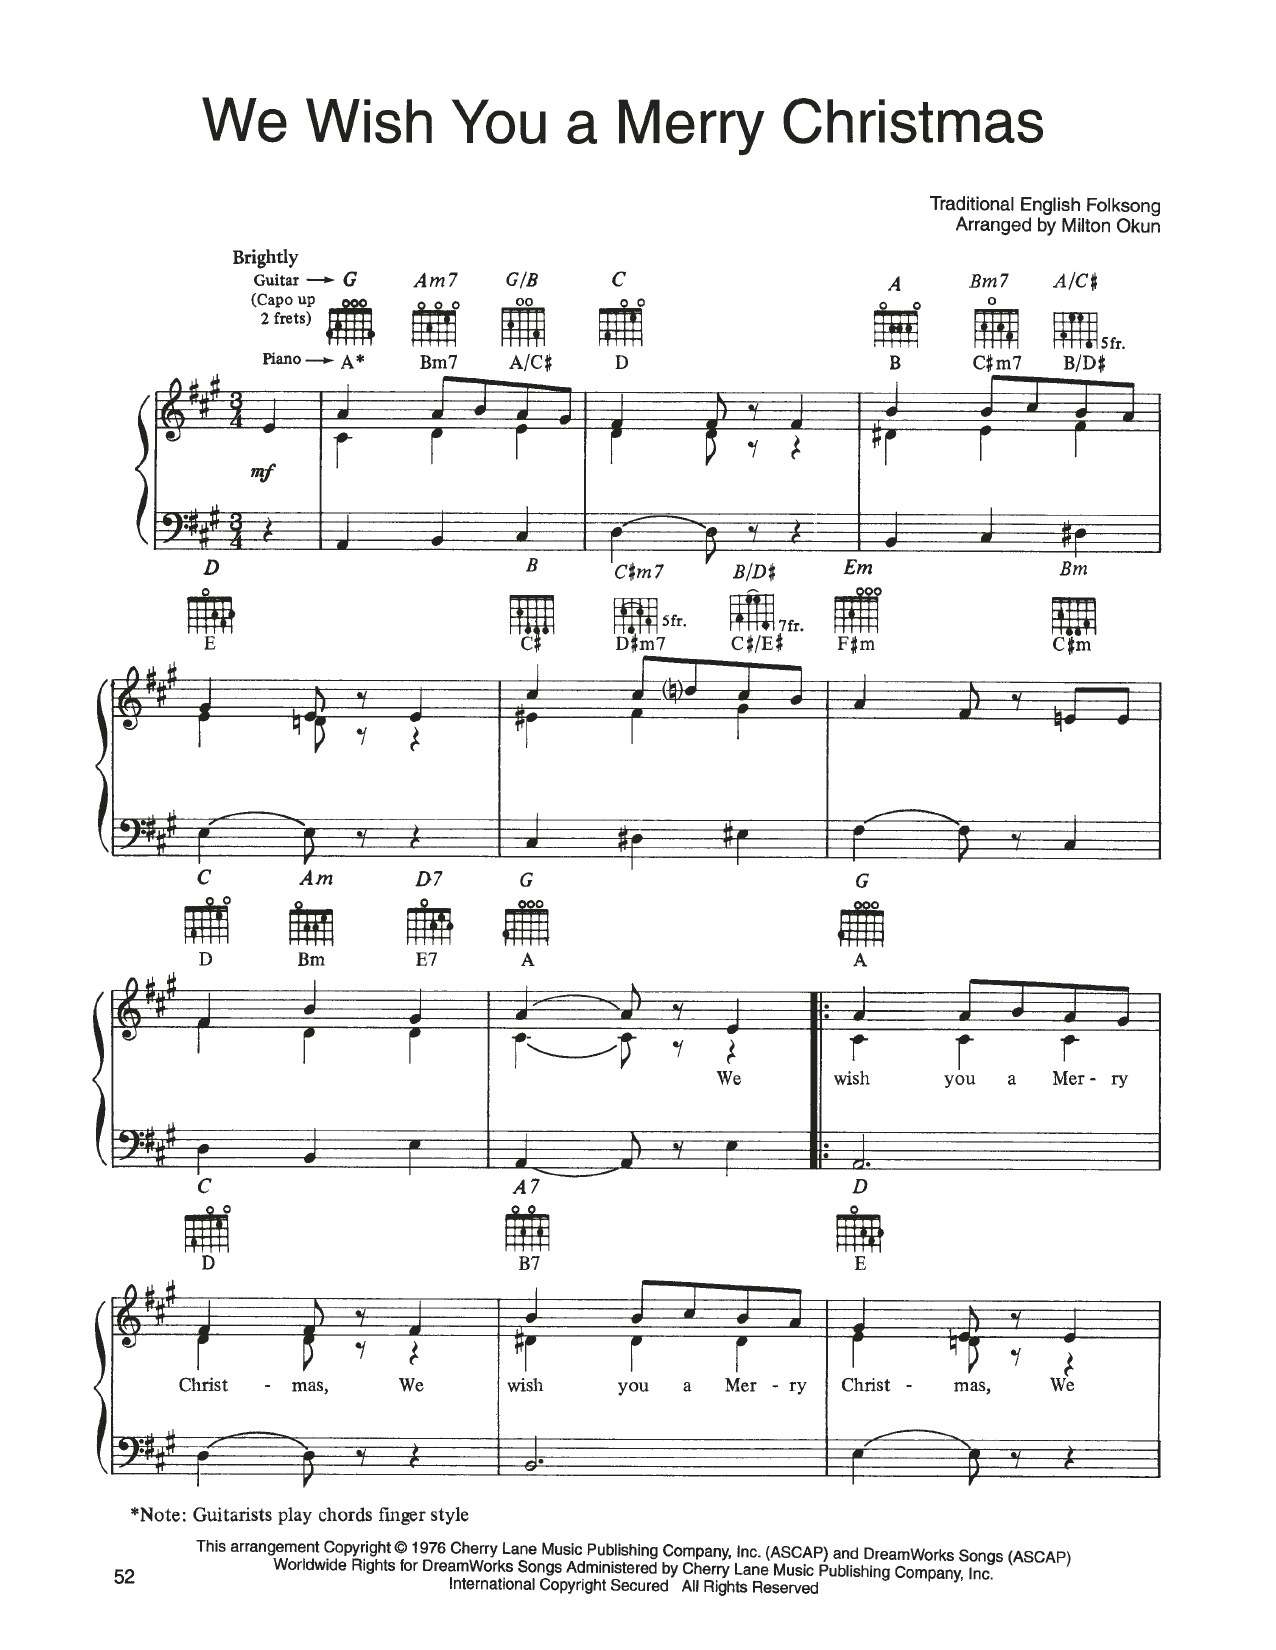 John Denver and The Muppets We Wish You A Merry Christmas (from A Christmas Together) sheet music notes printable PDF score